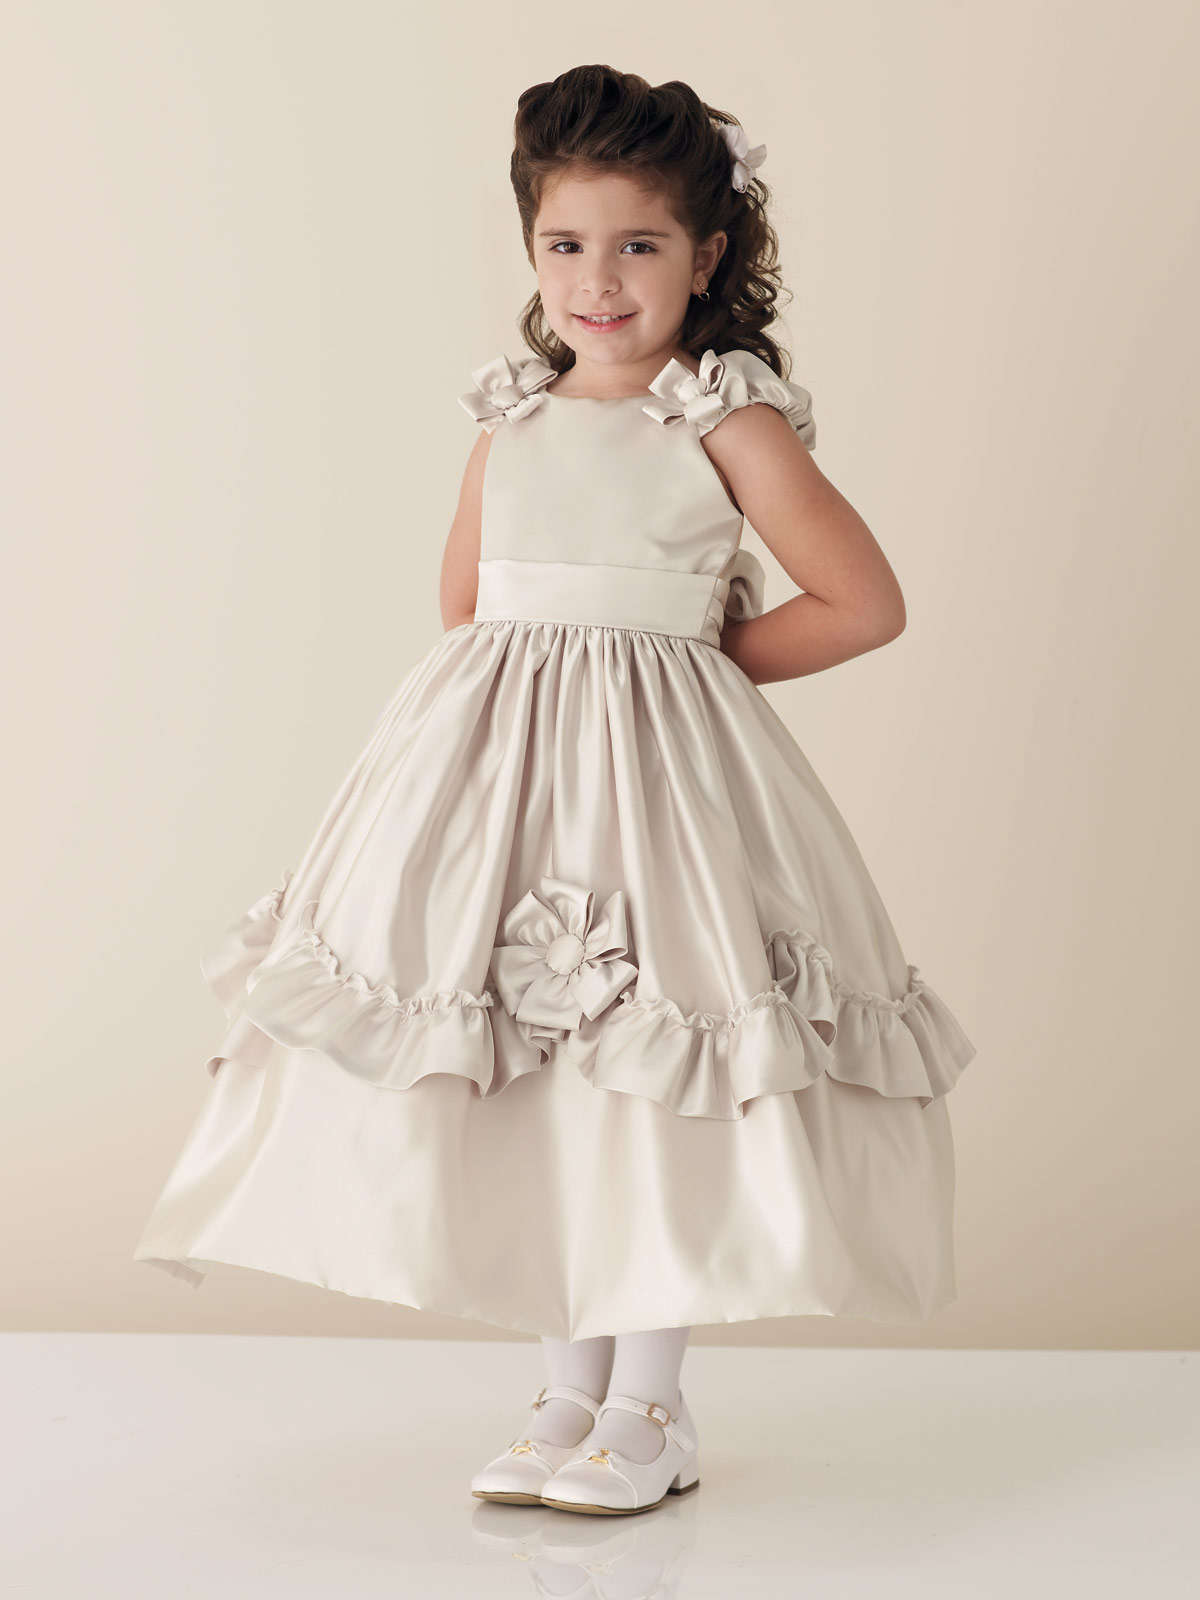 Cheap Dresses, Buy Directly from China Suppliers:Girls Princess Dress Children Evening Clothing Kids Chiffon Quality Lace Dresses BabyGirl Party Prom Pearl Dress New Summer Enjoy Free Shipping Worldwide! Limited Time Sale Easy Return/5(K).